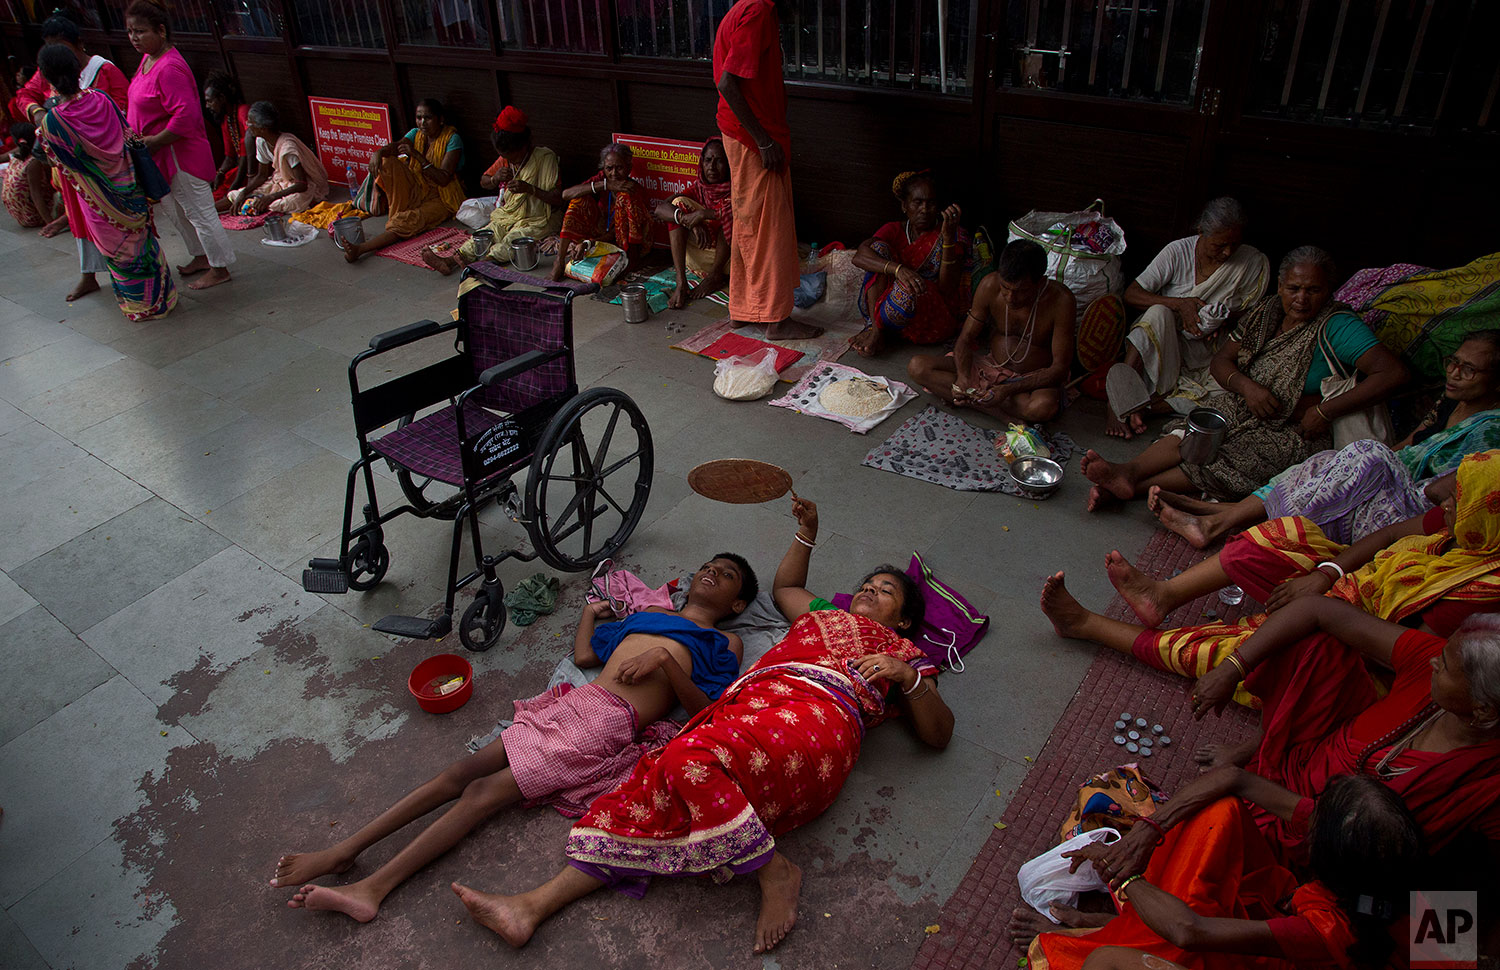 Monika Deb Nath, 45, uses a hand fan and rests on the floor with her son Gopal, 17, at the Kamakhya temple during the Ambubachi festival in Gauhati, India, June 25, 2019 . Monika, 45, and her husband have visited the Kamakhya temple four years in a row for the annual Ambubachi festival, praying for a miracle to heal their son from cerebral palsy, which has left him with almost no control over his own body. The temple is presided over by the goddess Kamakhya, the most important goddess of tantric worship, an esoteric form of Hinduism.(AP Photo/Anupam Nath)